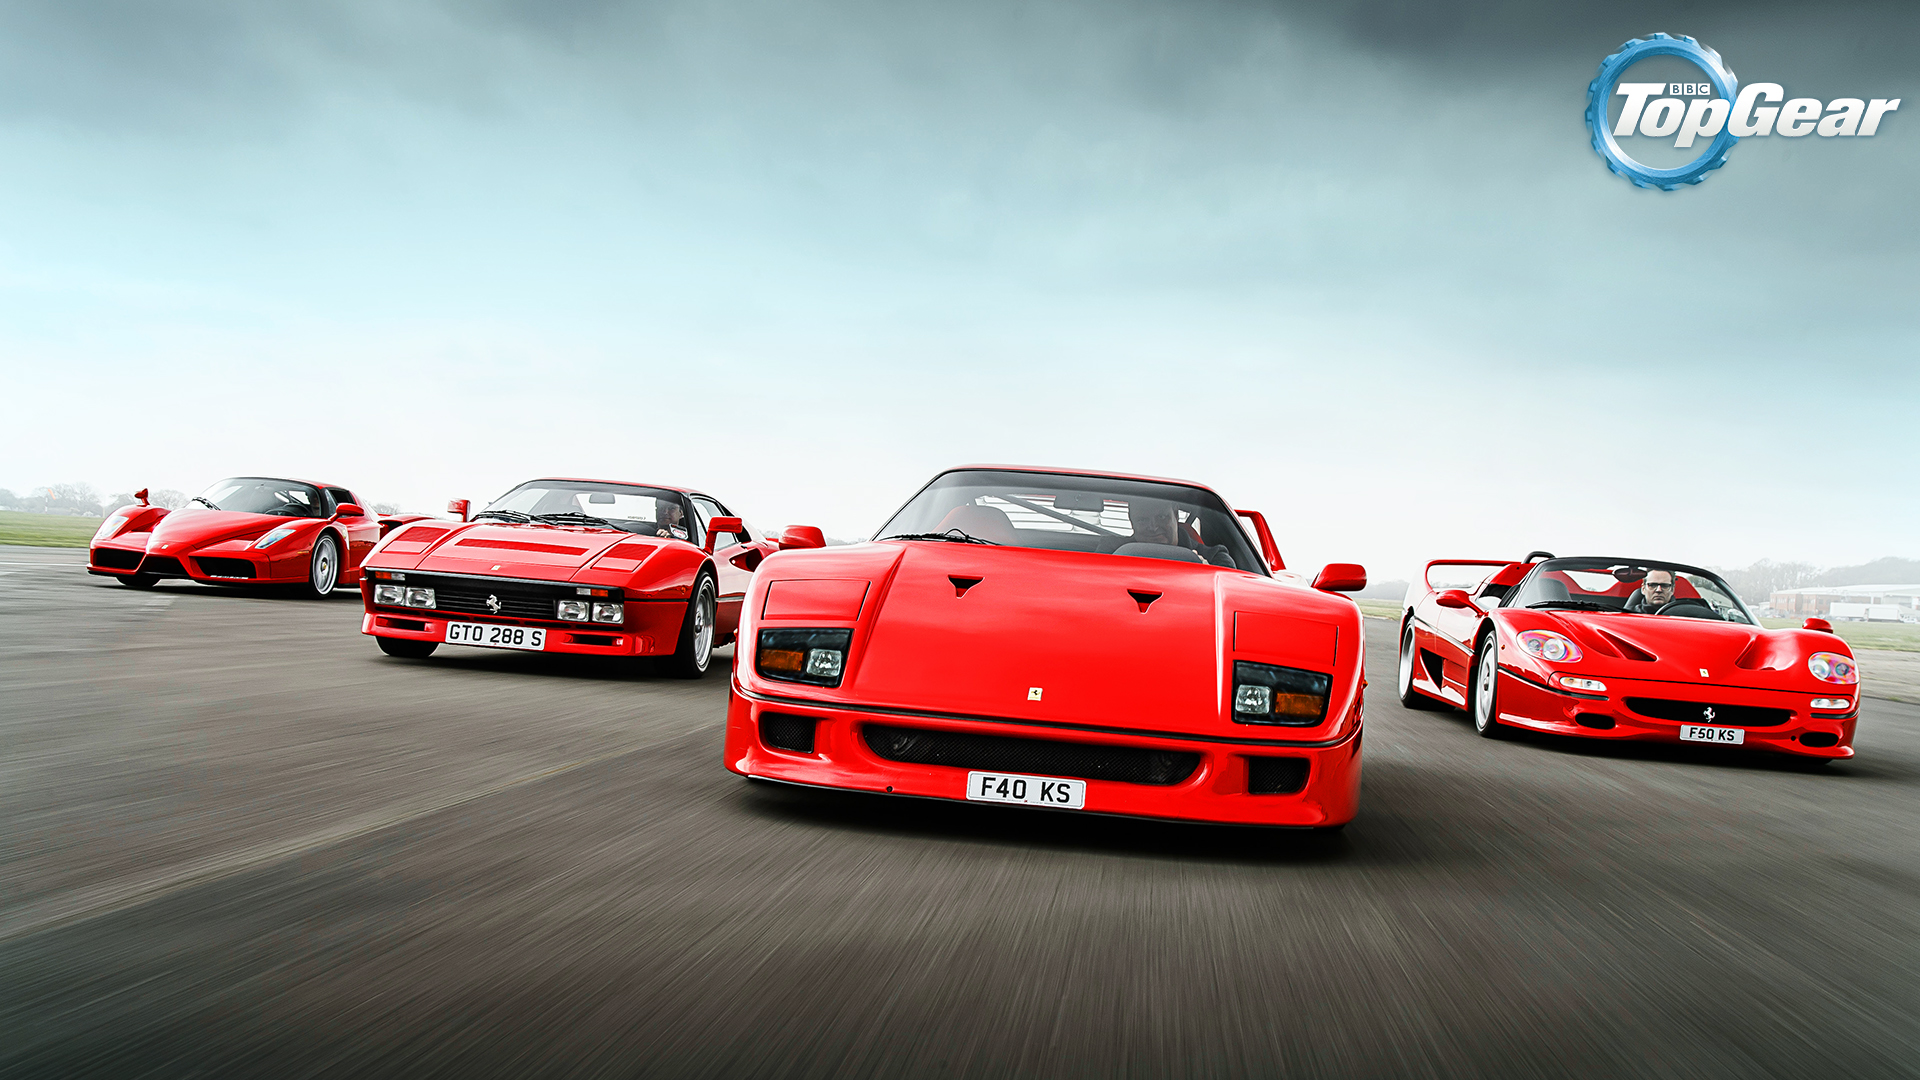 Wallpapers The Greatest Ferraris Ever Bbc Top Gear